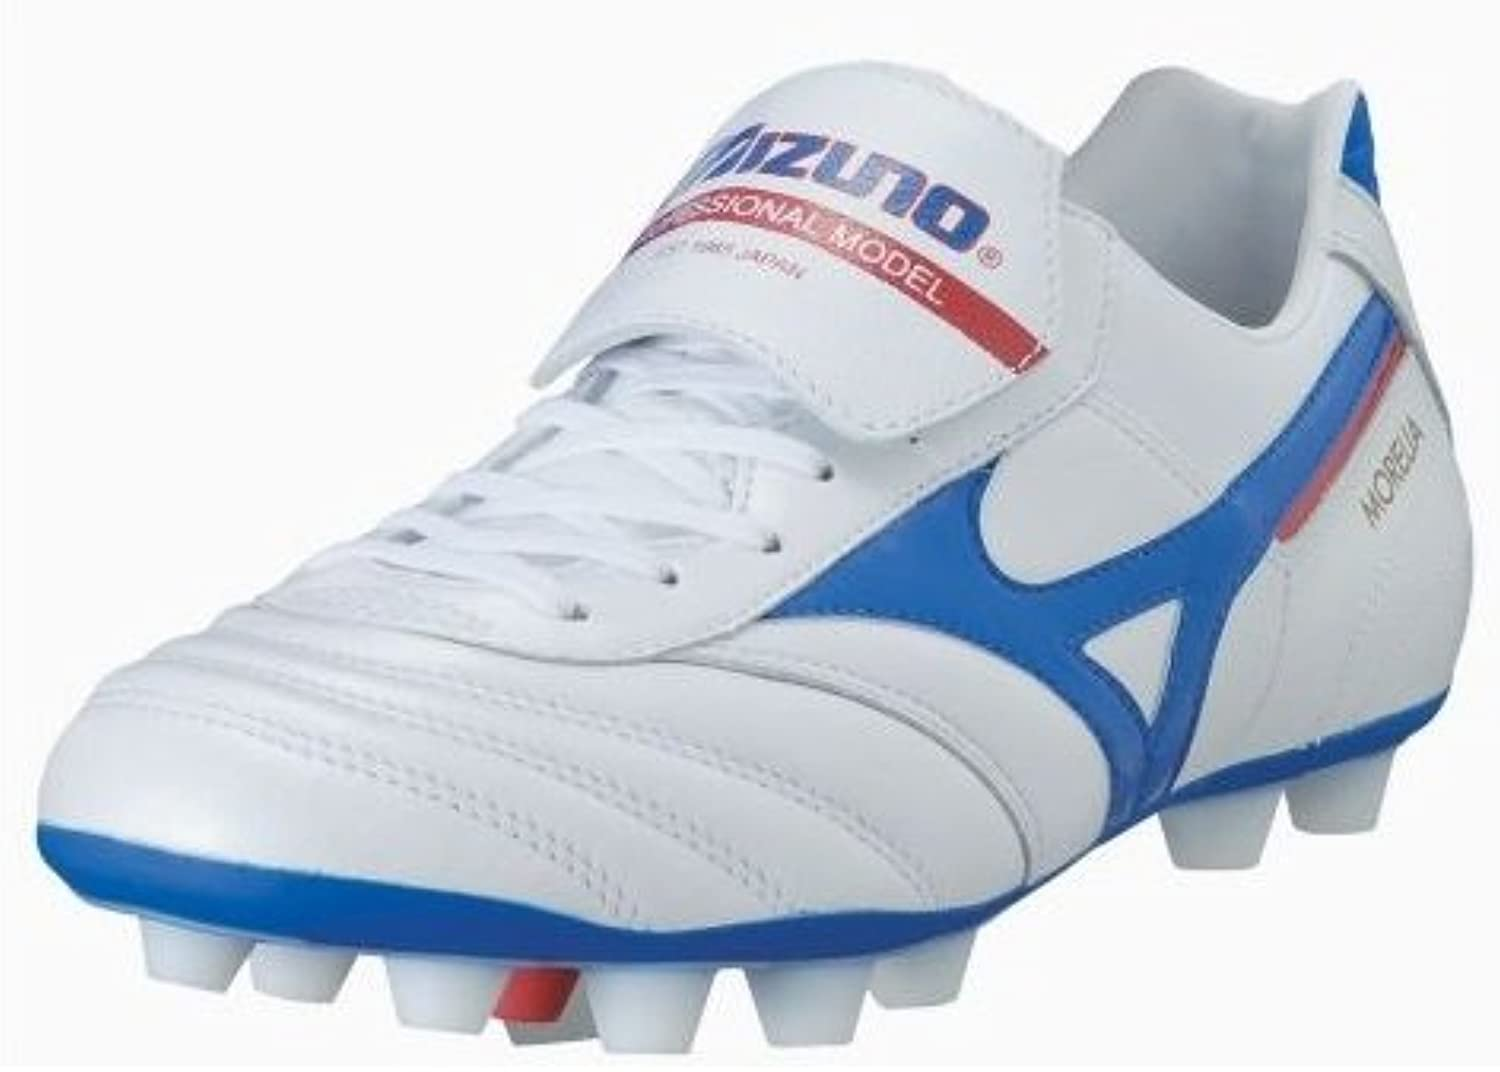 Morelia Moulded FG Football Boots   Pearl White/Blue/Red   size 8.5